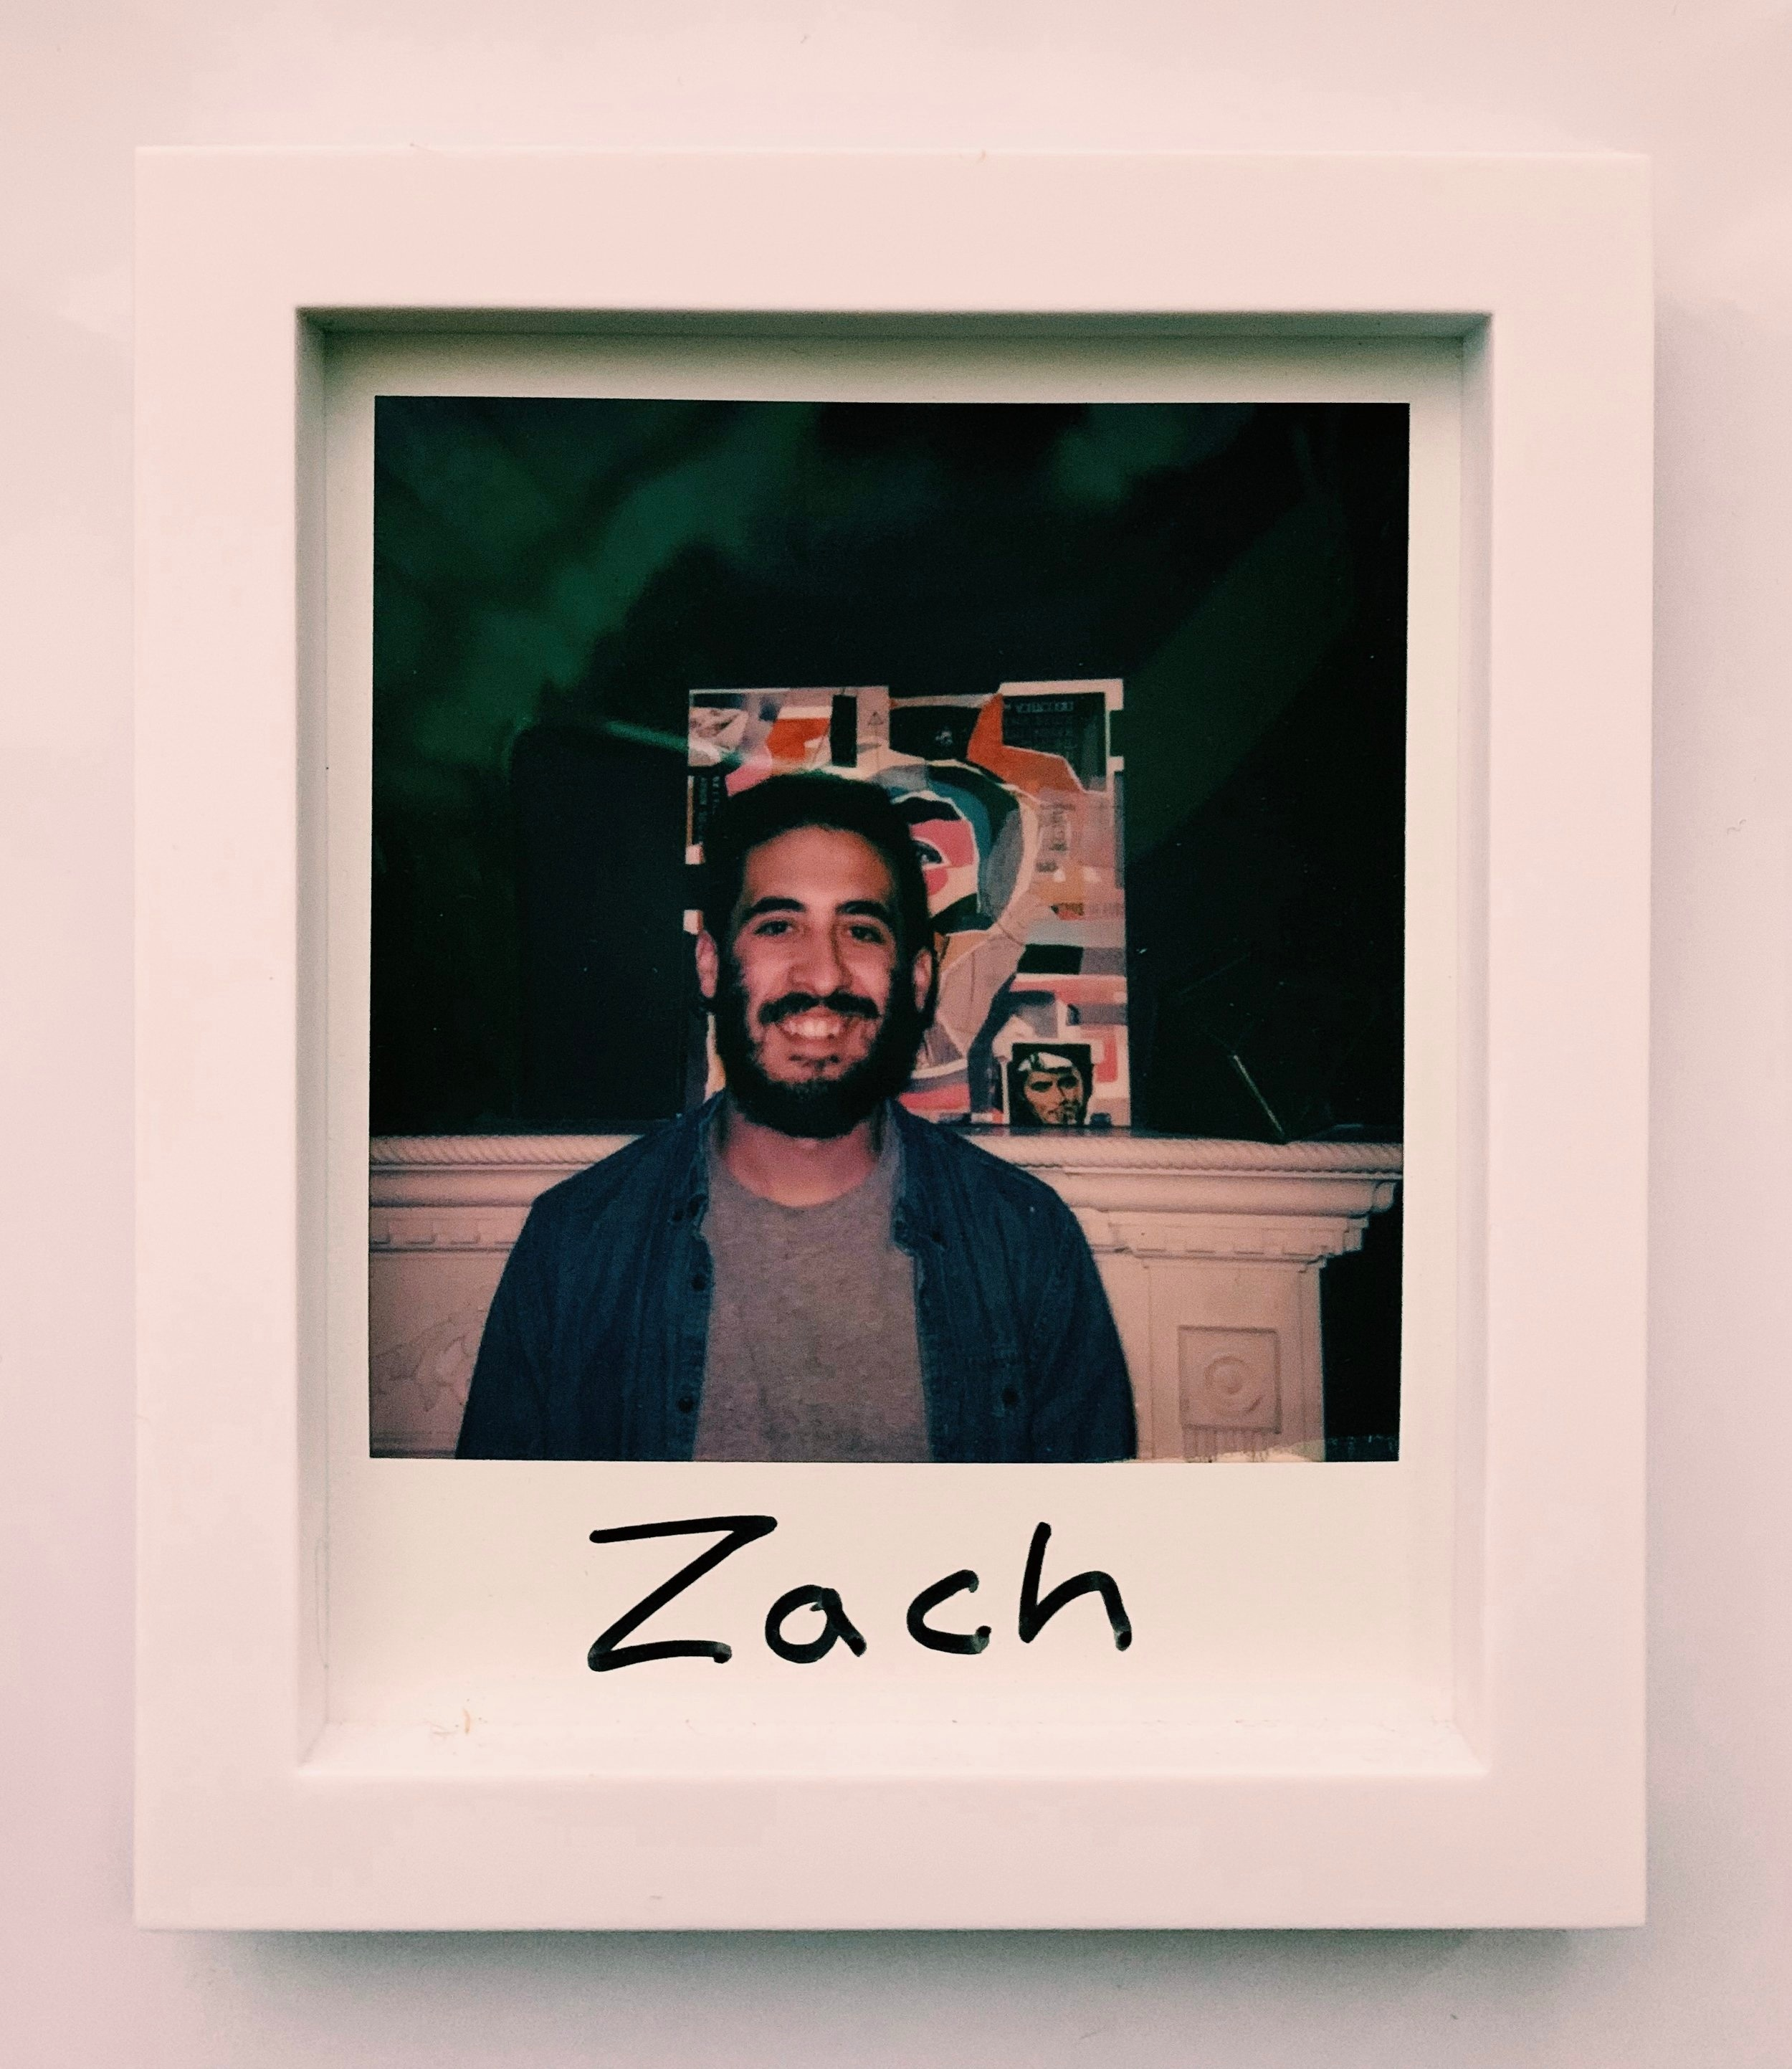 Zach_Polaroid.jpg